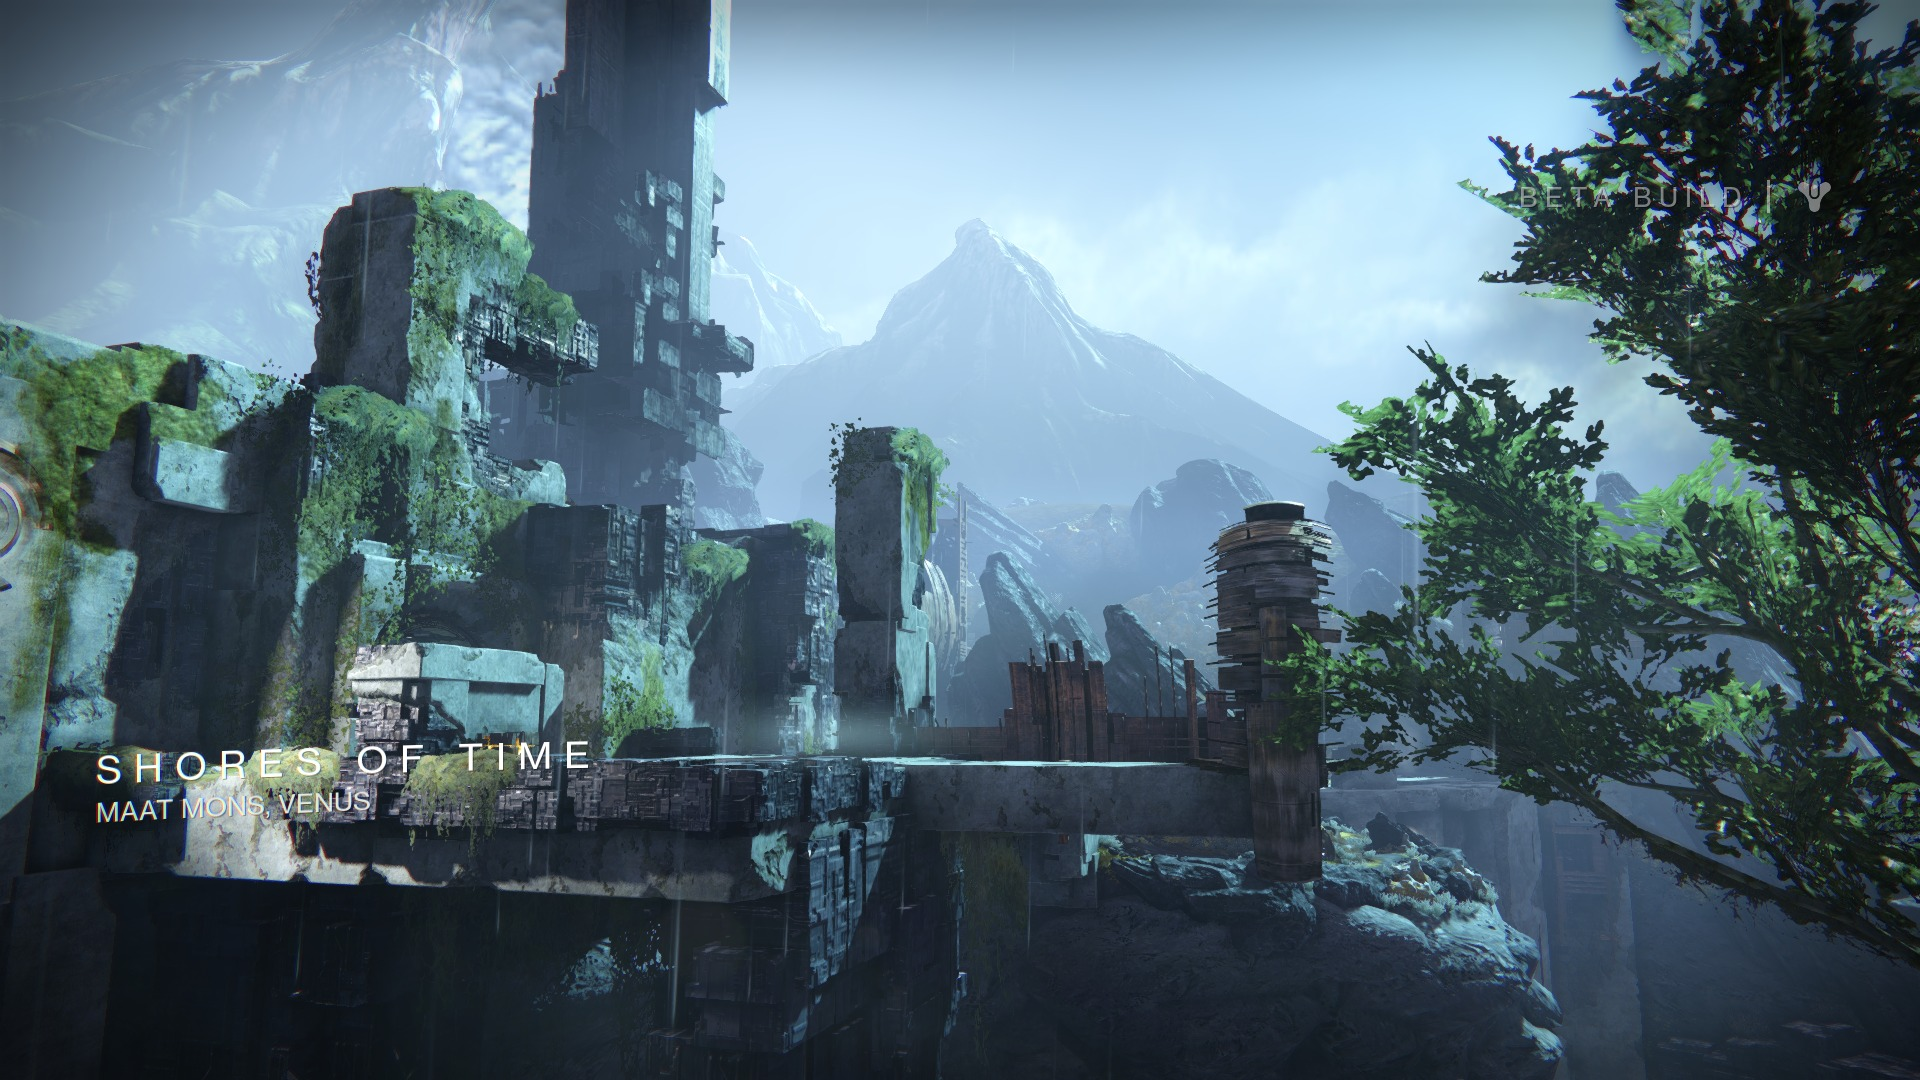 Game Preview: Destiny Beta Hands On – Part One   Funk's ... on destiny reef map, full destiny old russia map, mars destiny map, destiny map size, endless steps destiny map, full vault of glass destiny map, hall of whispers destiny map, destiny full map labeled, rune factory tides of destiny map, destiny vog map, anchor light moon of destiny map, destiny earth map, tales of destiny 2 map, destiny glass vault raid,